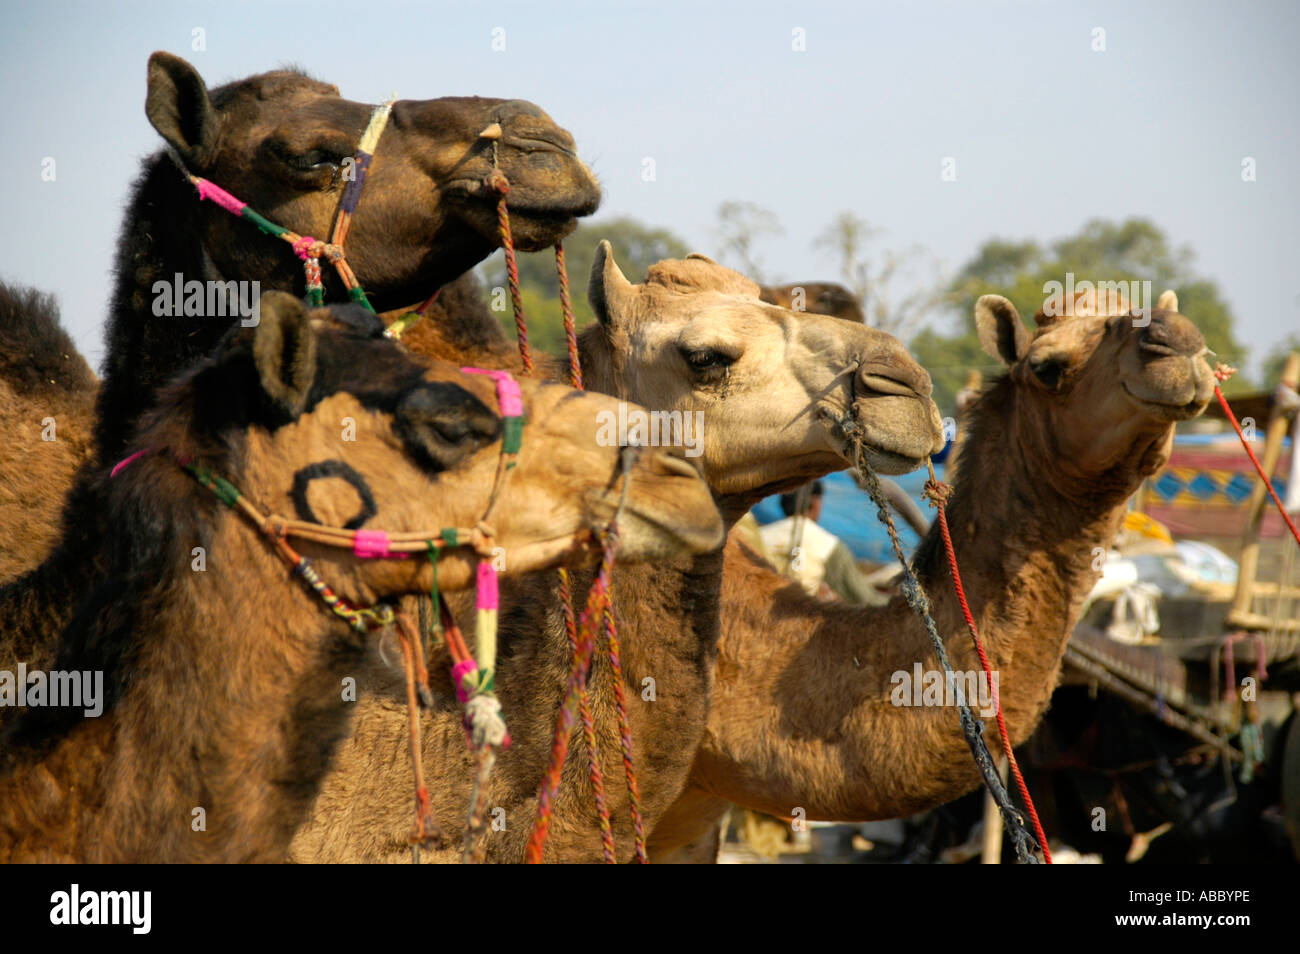 Hochflor Teppich Stoney Proud Camel Stockfotos And Proud Camel Bilder Alamy